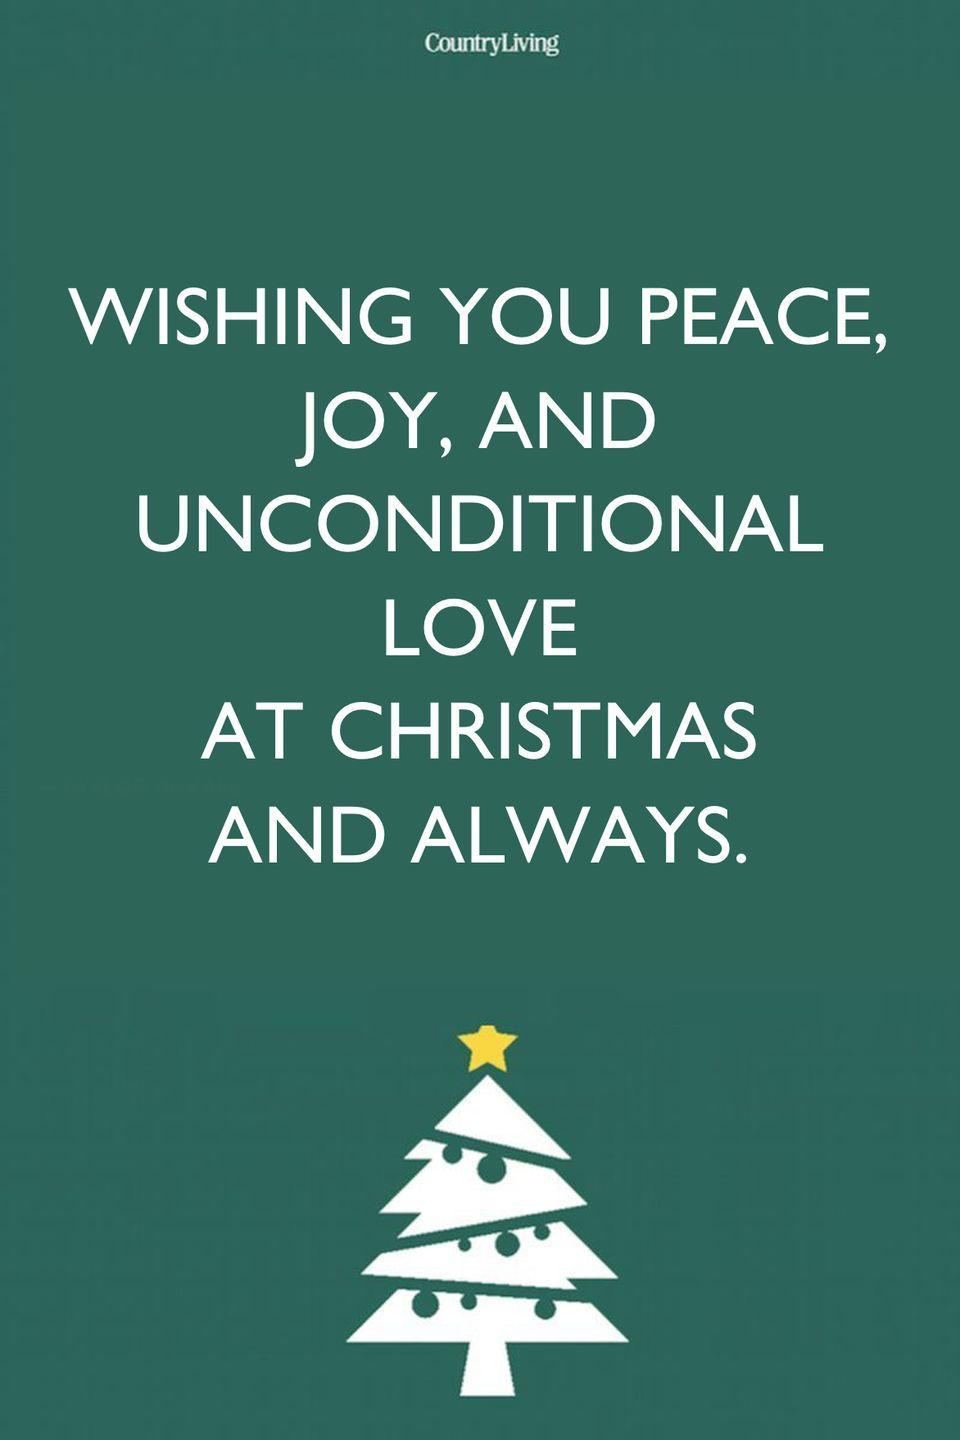 <p>Wishing you peace, joy, and unconditional love at Christmas and always. </p>